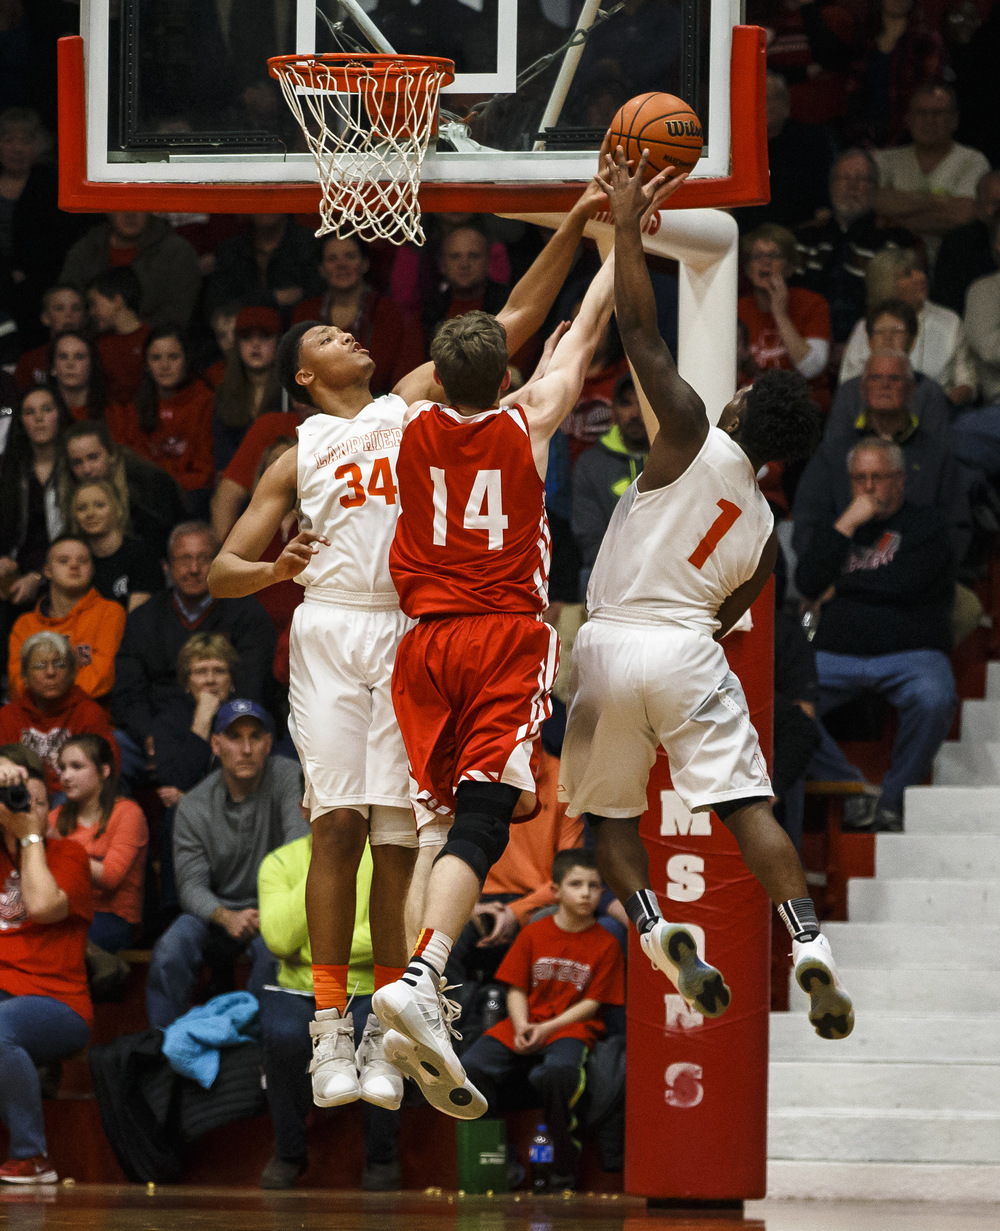 Lanphier's Davon Higgerson-Harris (34) blocks a shot from Jacksonville's Riley Dugan (14) in the second quarter during the Class 3A Jacksonville Regional championship game at the Jacksonville Bowl, Friday, March 4, 2016, in Jacksonville, Ill. Justin L. Fowler/The State Journal-Register